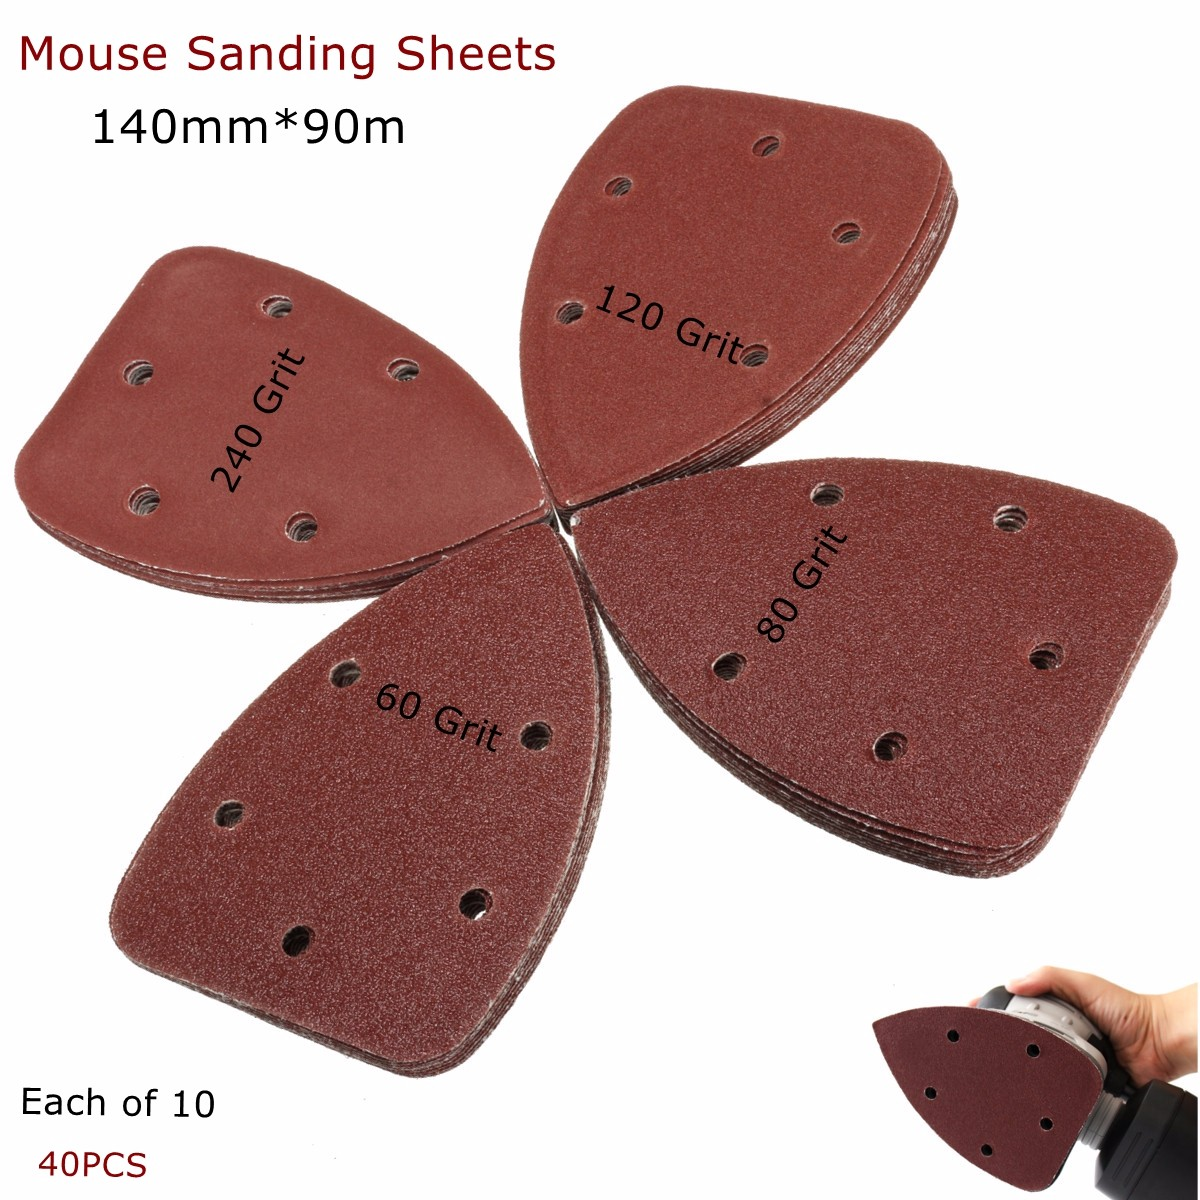 40-Pack Mouse Sander Pads Sanding SHeets Discs Sandpaper Mixed Grit 40 80 120 240 Fit... by